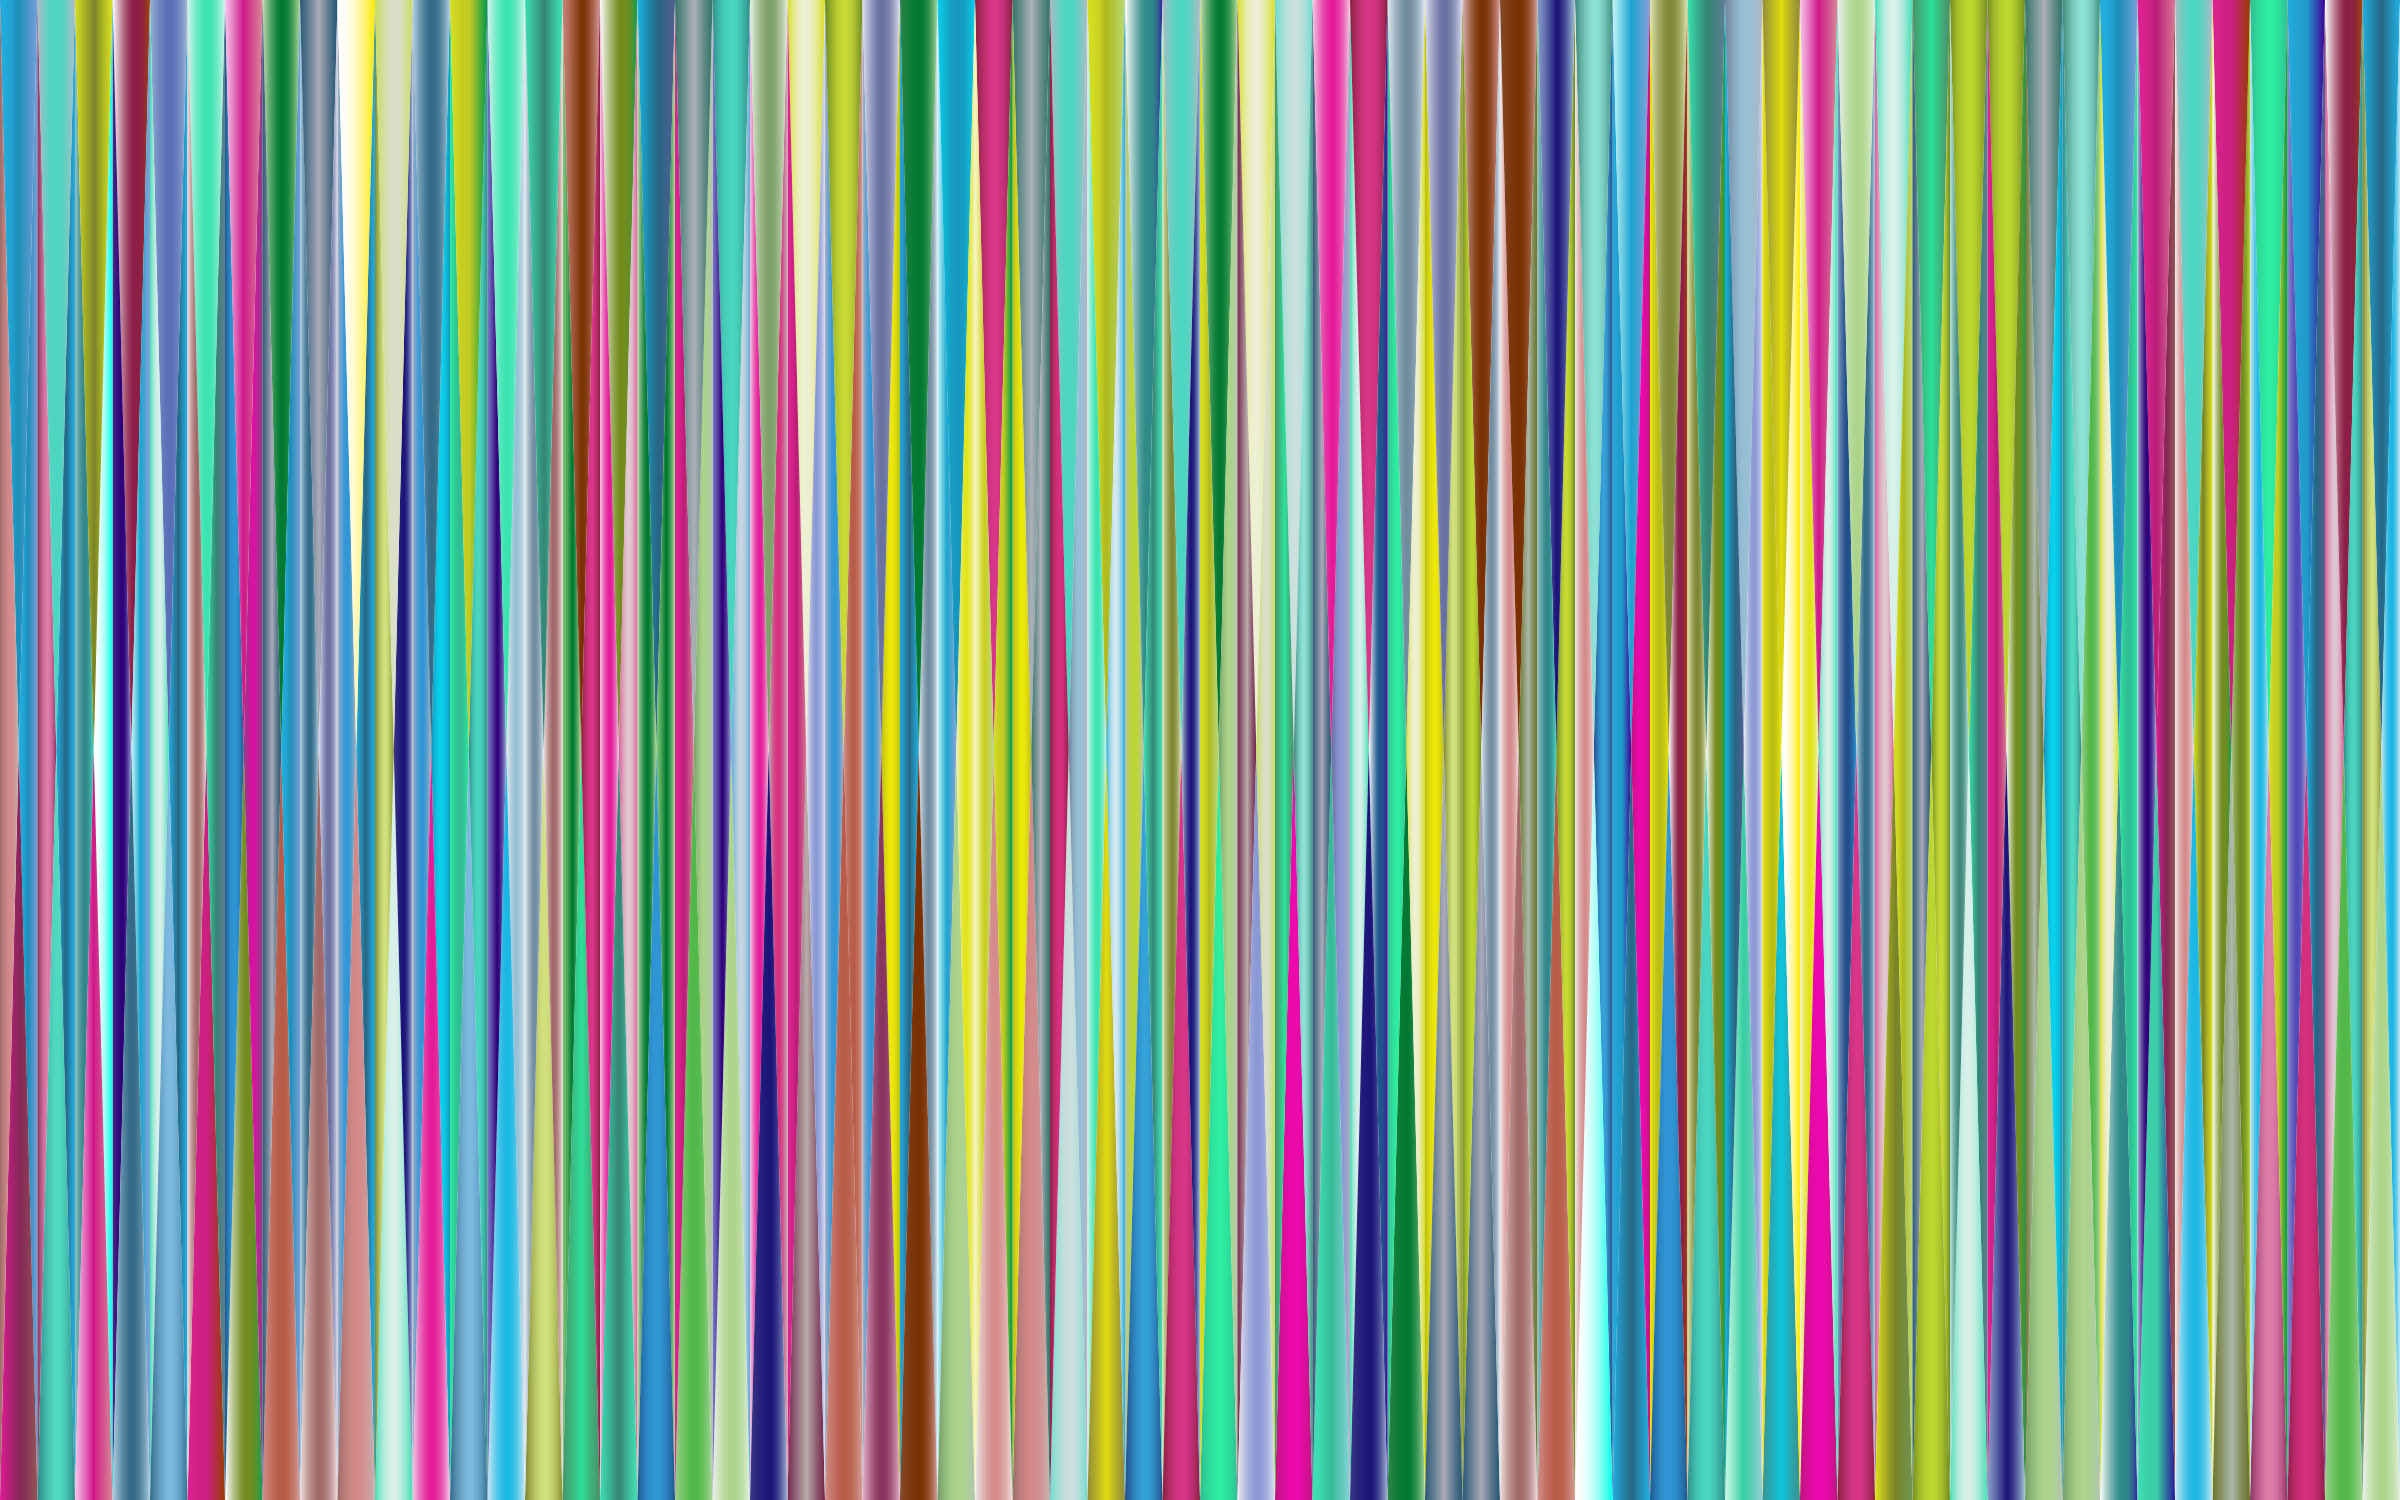 Stripes background png. Clipart stylized striped big